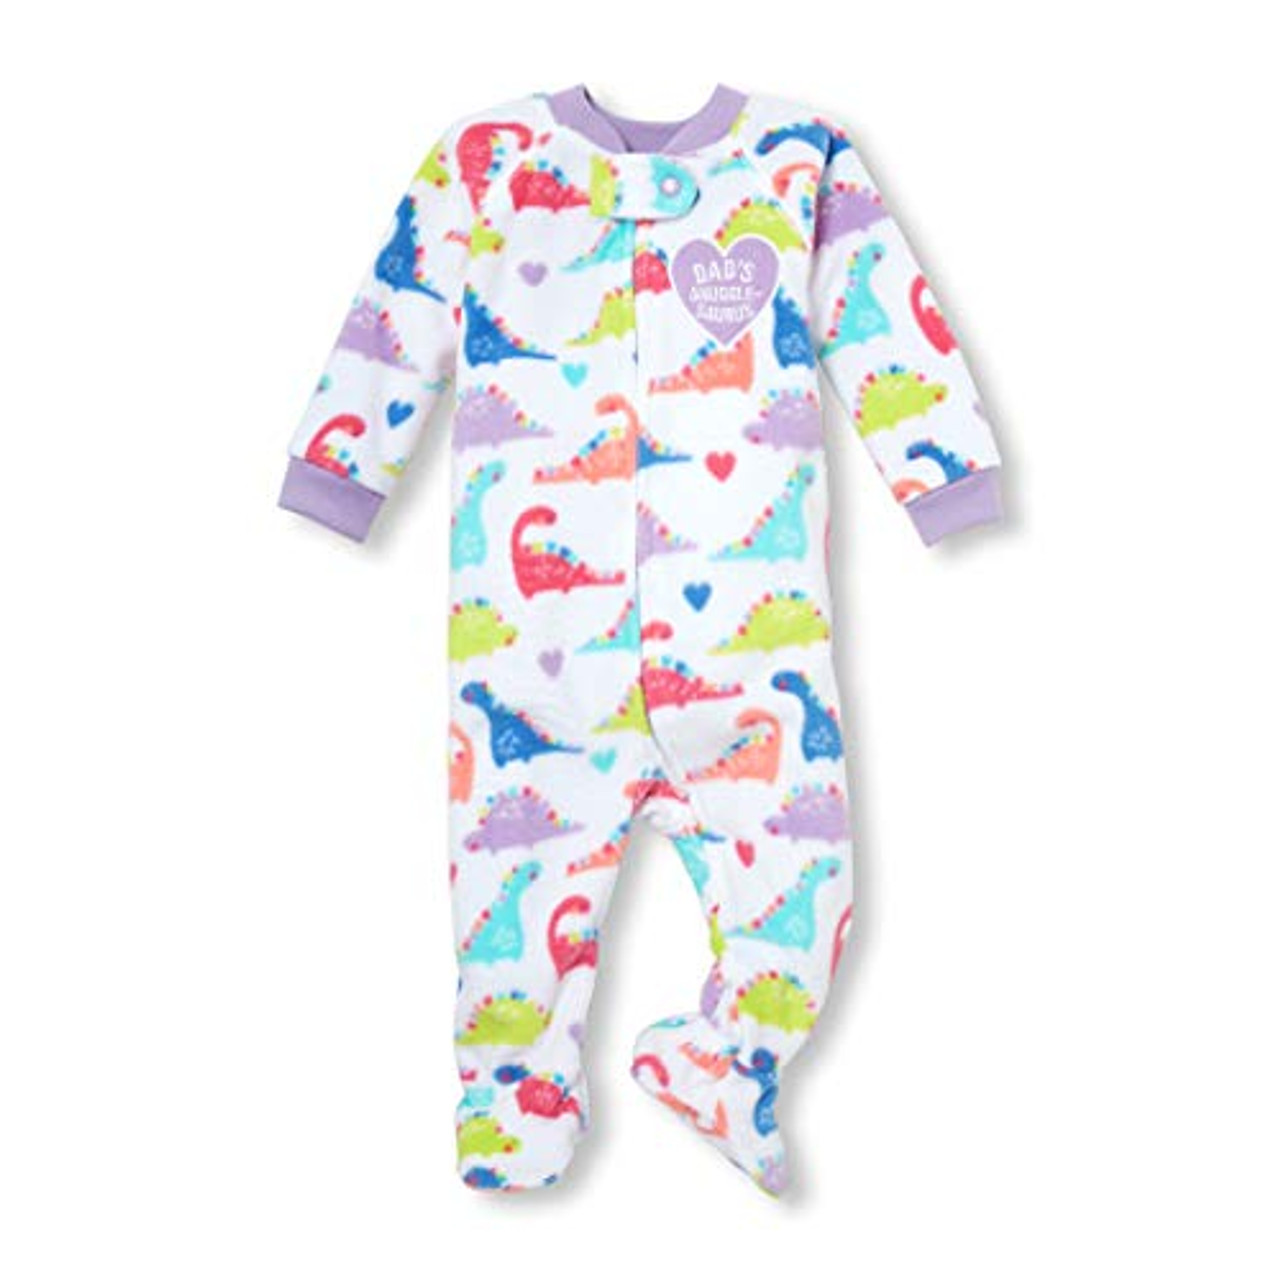 The Childrens Place Baby Boys Dinosaur Blanket Sleepers